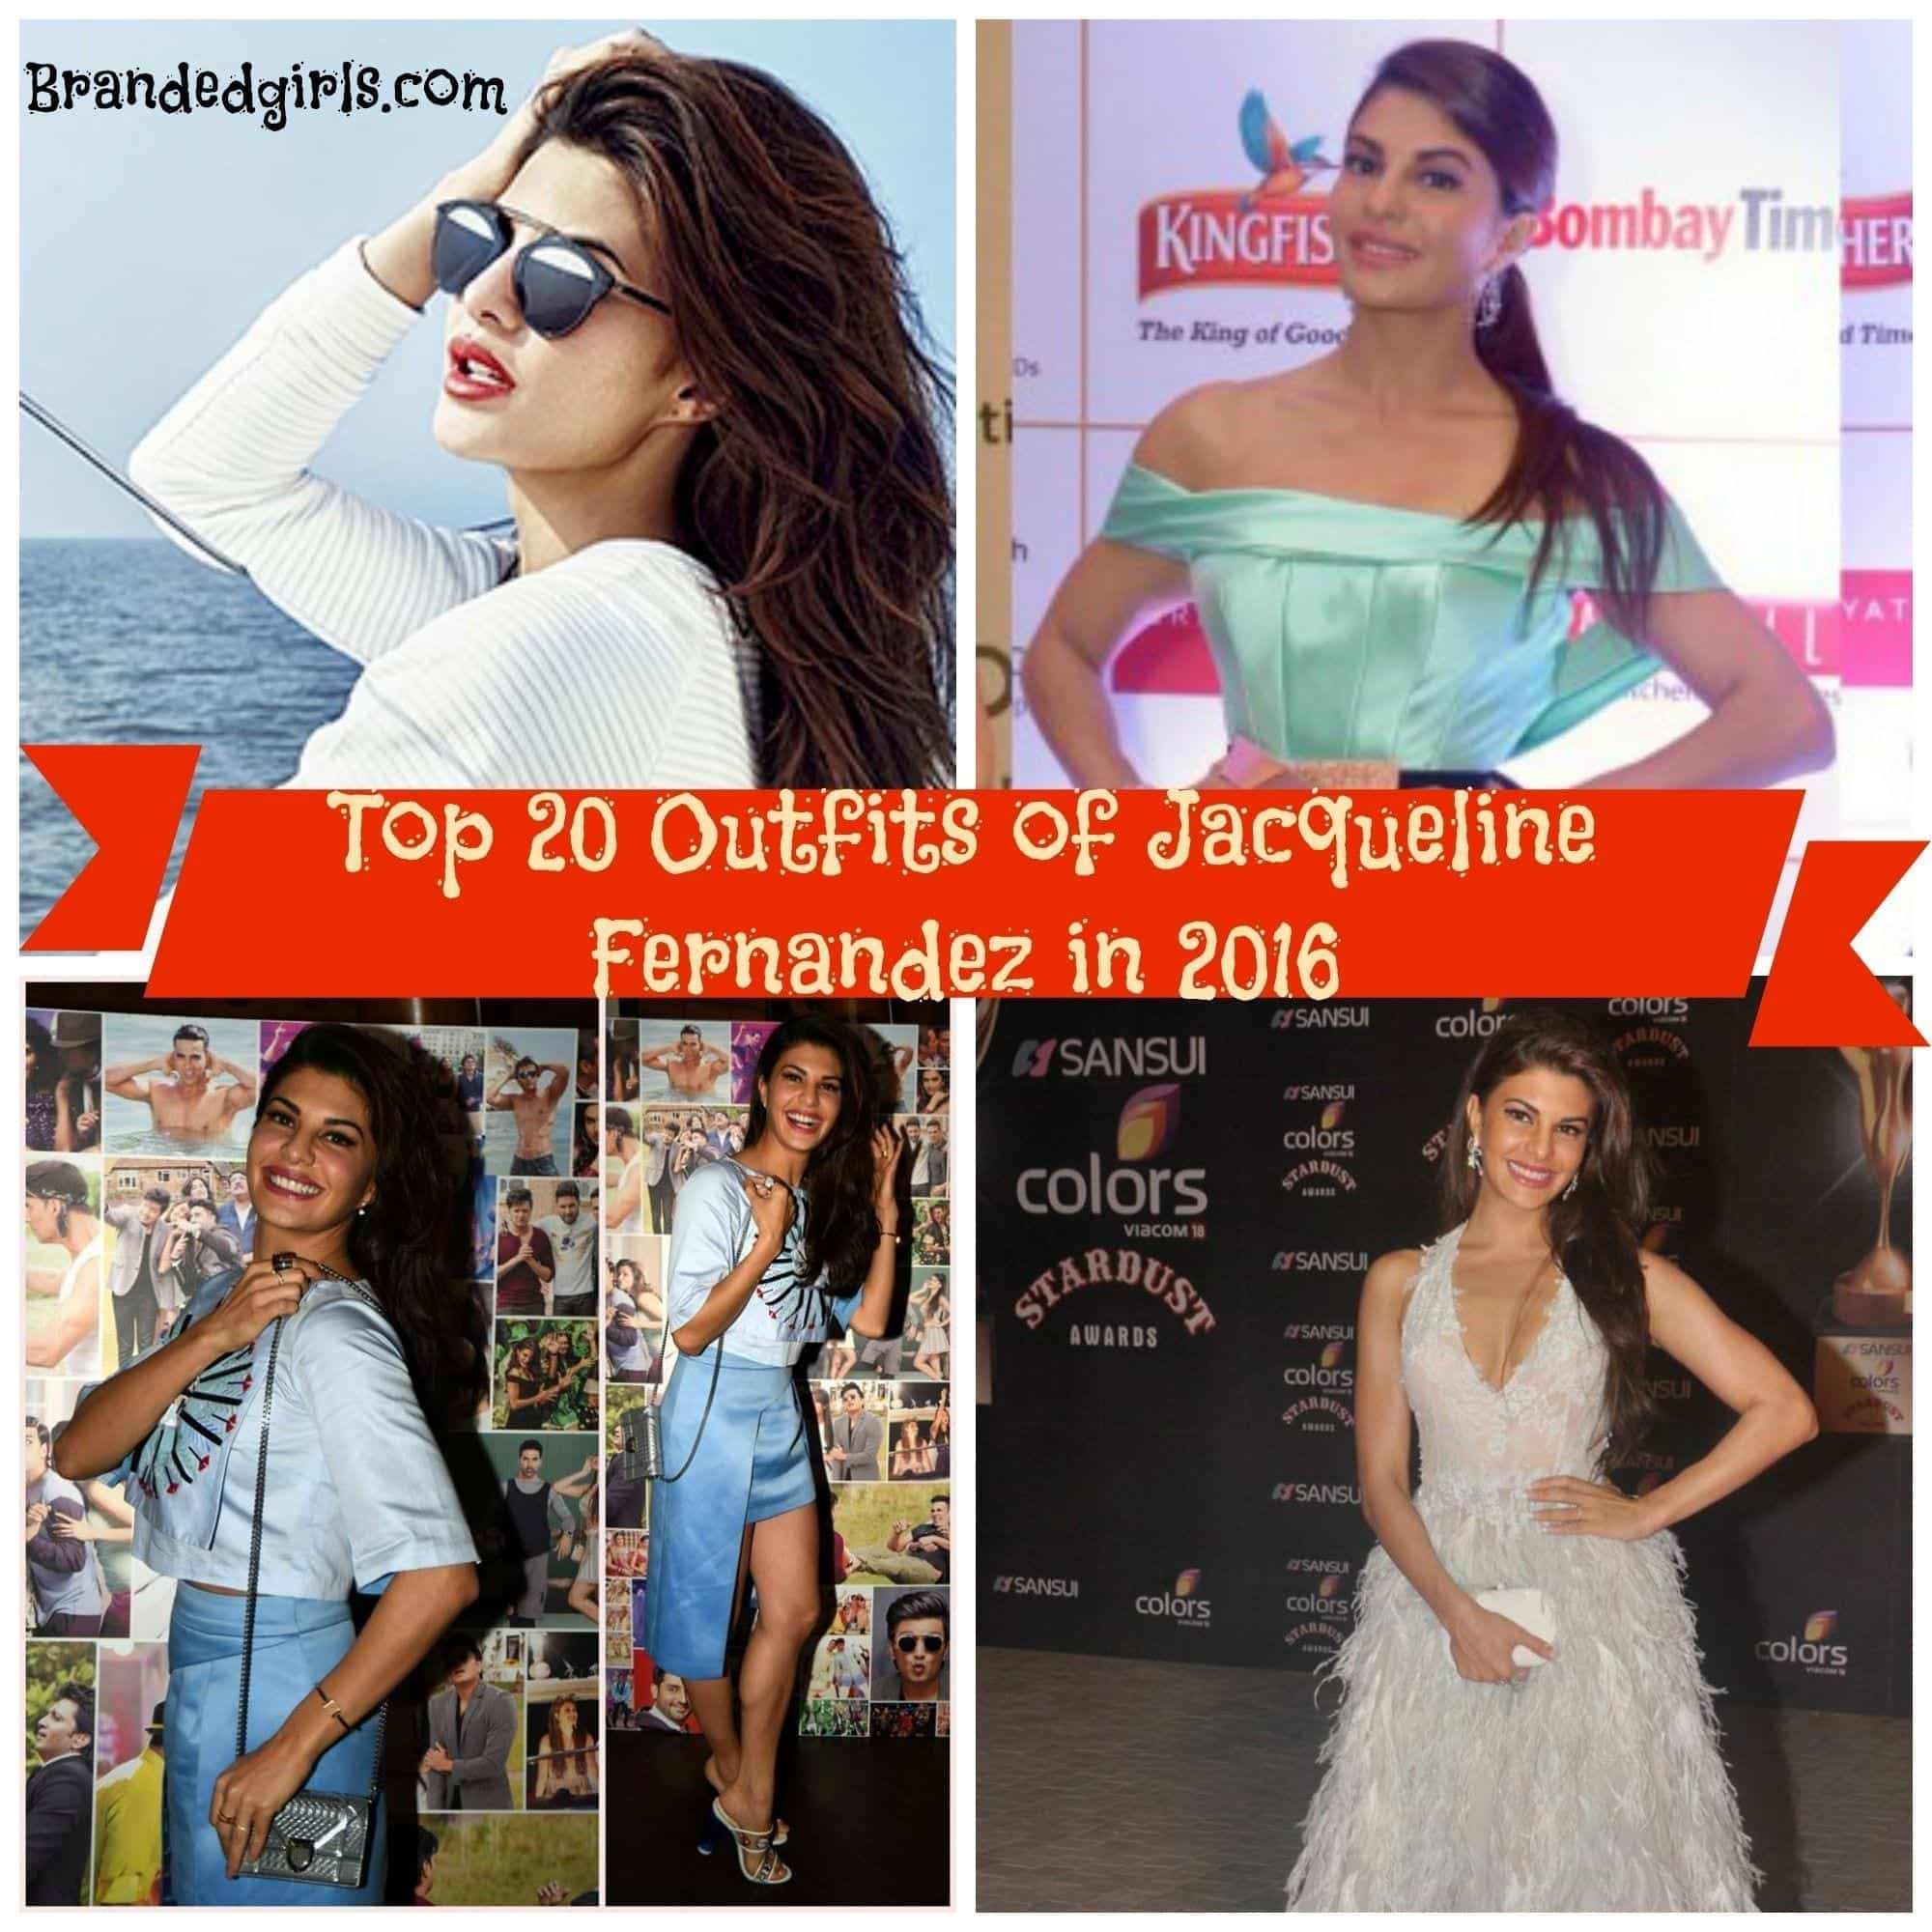 Jacqueline Fernandez OutfitsTop 20 Dressing Styles of Jacqueline This Year